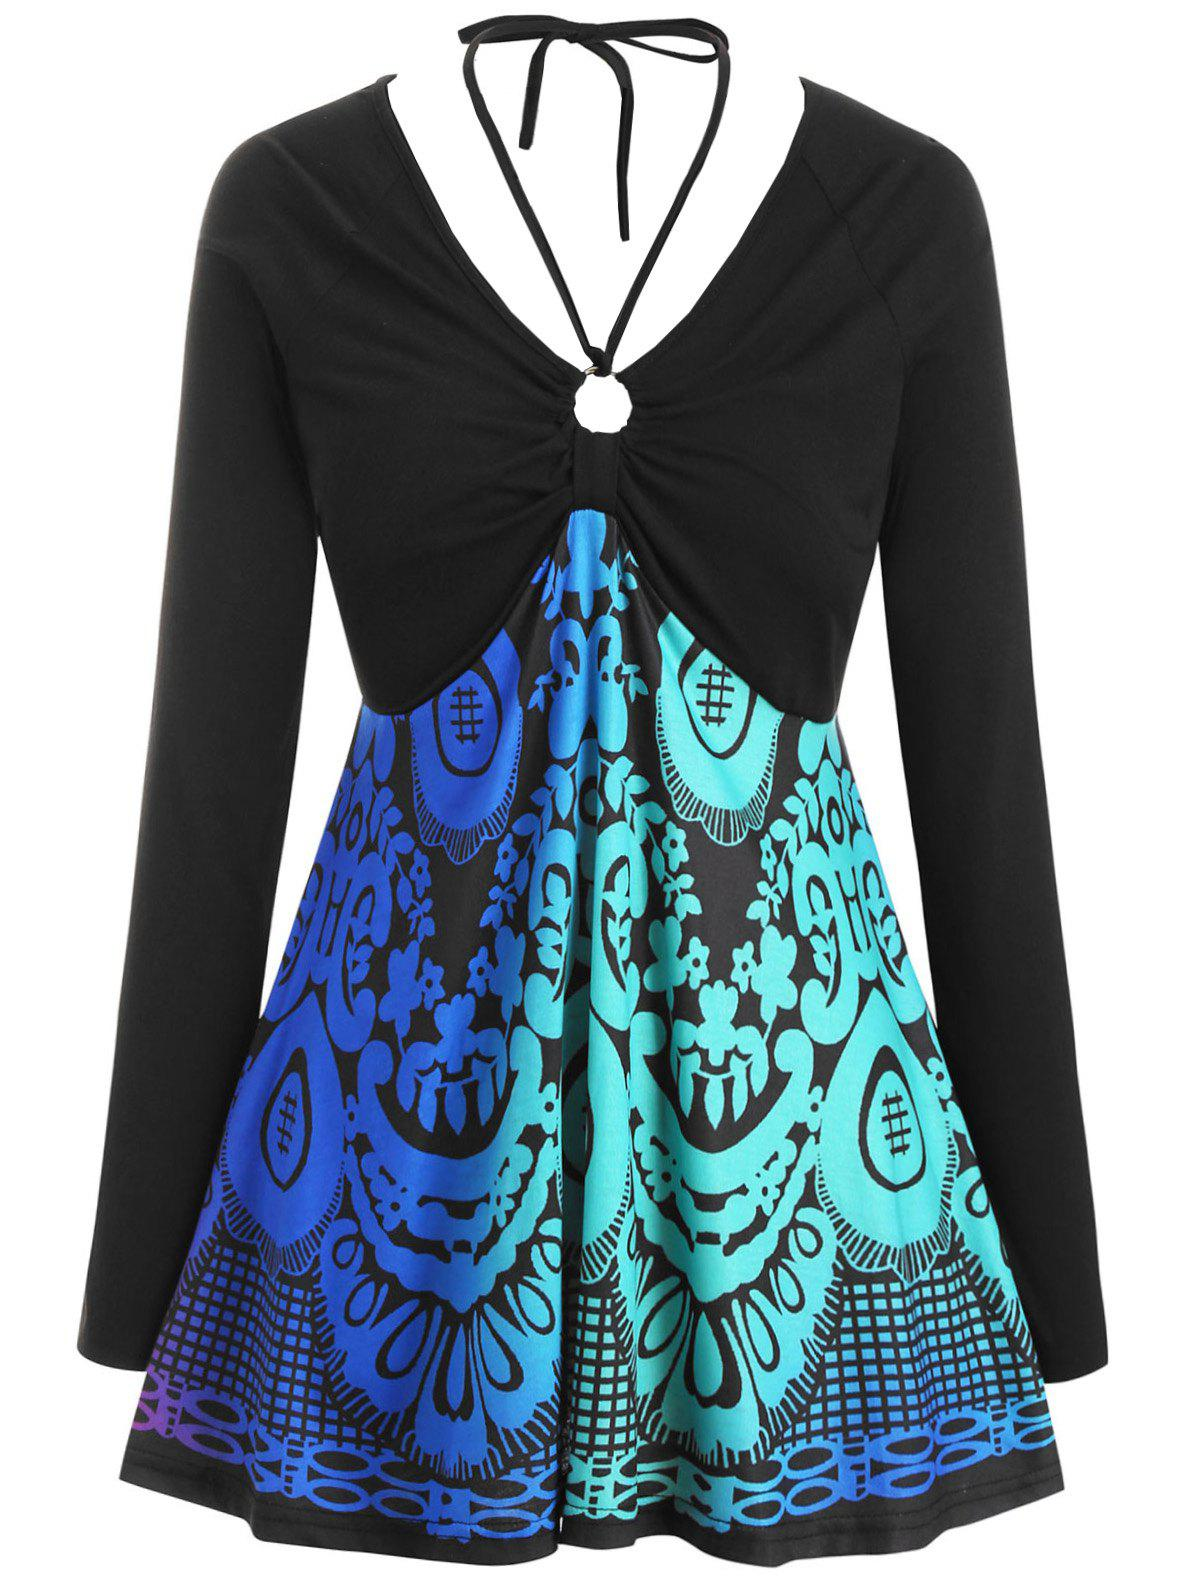 New Long Sleeve Printed O Ring Tie Collar Plus Size Top